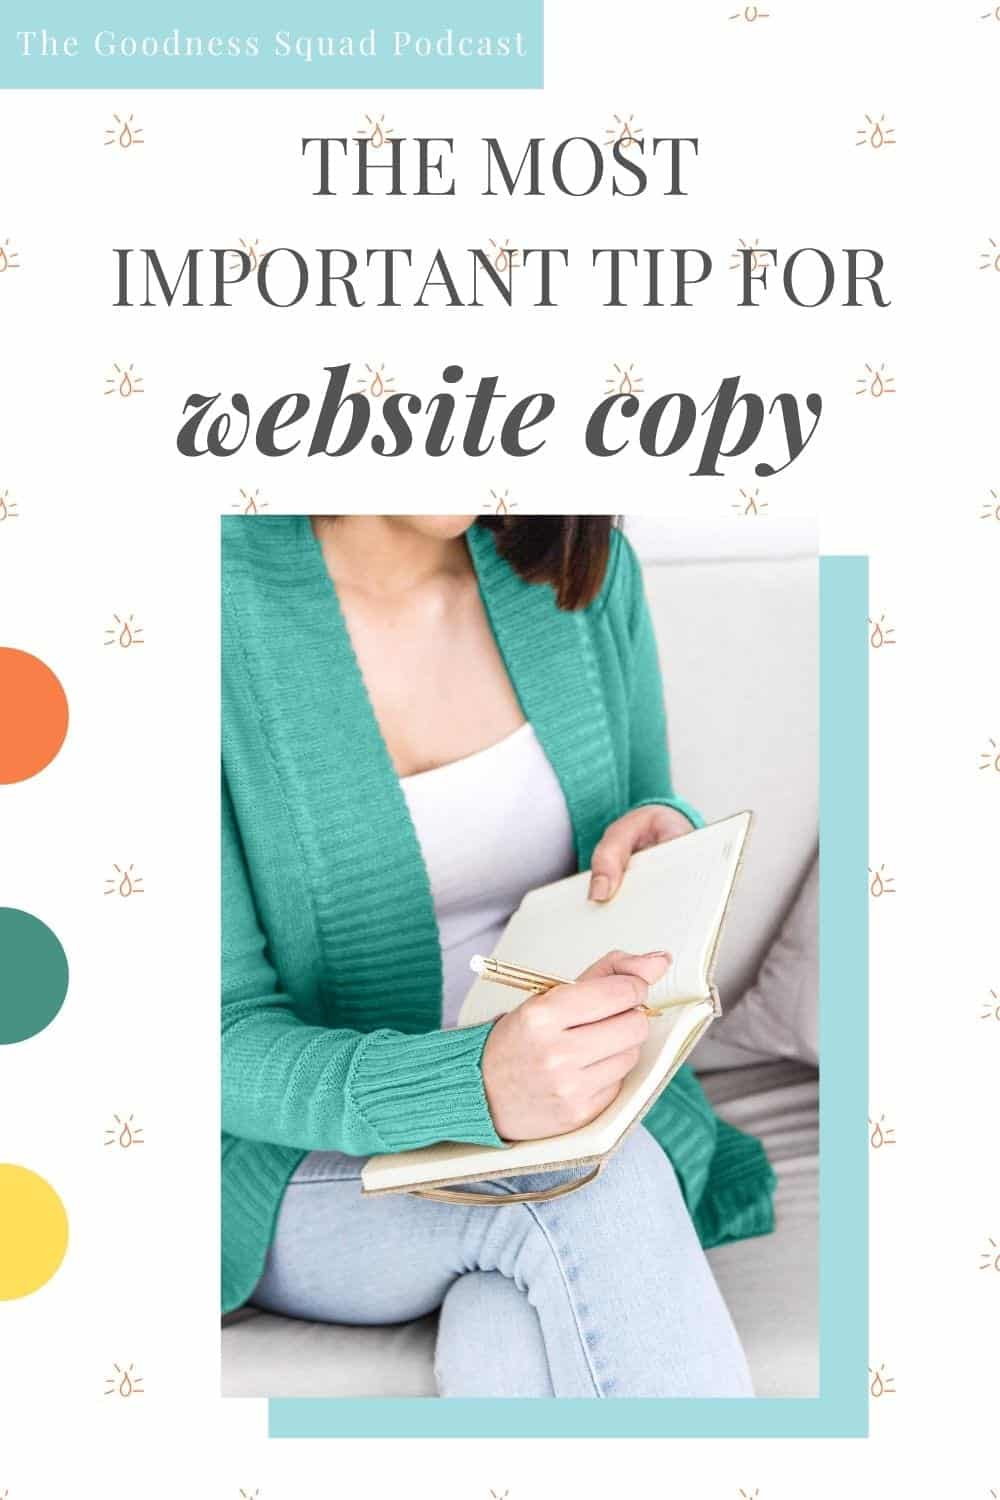 028_The Most Important tip for your website copy